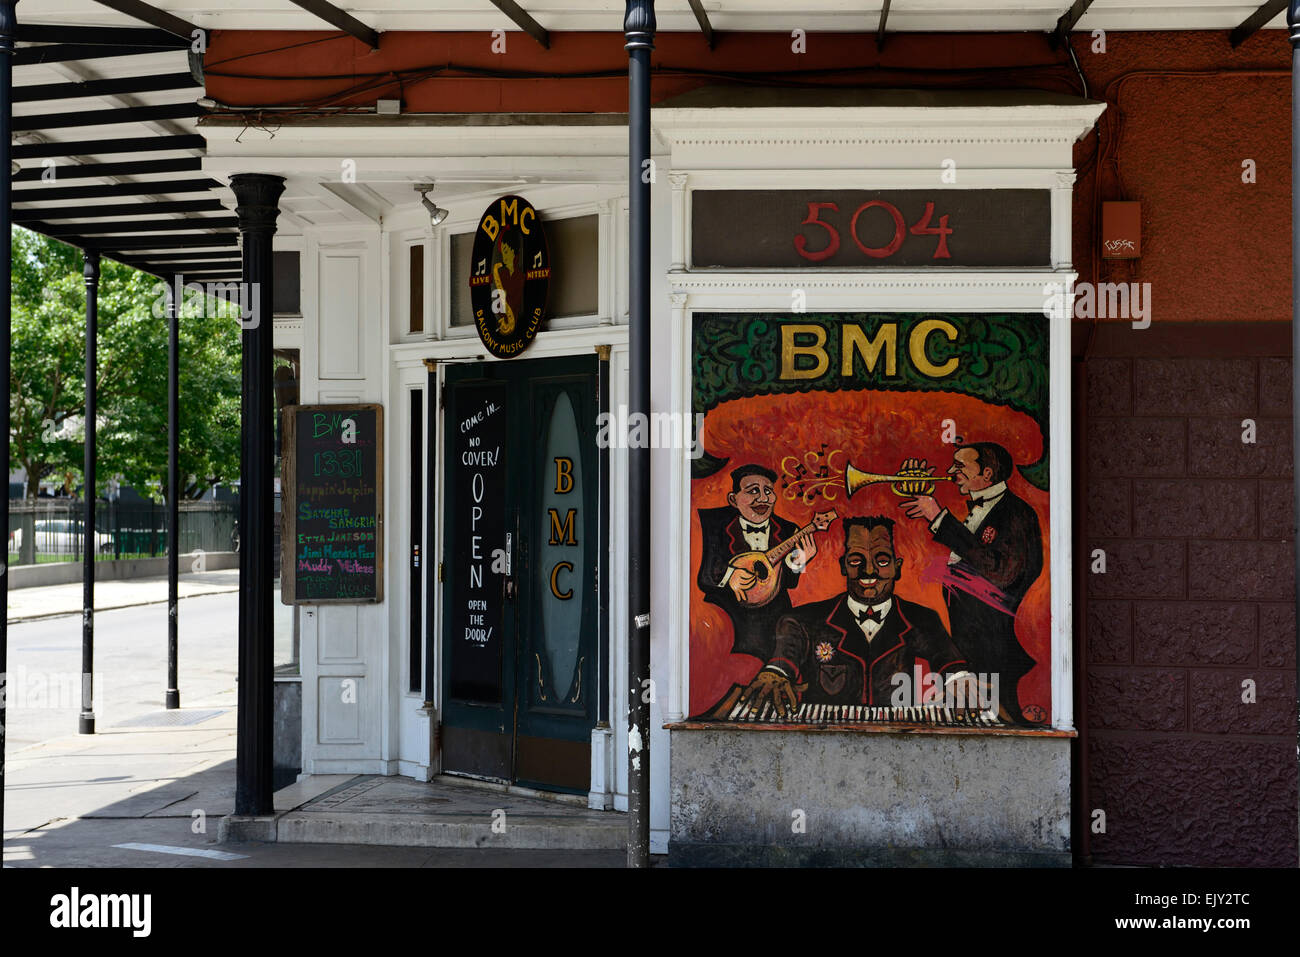 Balcony Music Club Rue Decatur jazz french quarter new orleans musical muscians RM USA - Stock Image